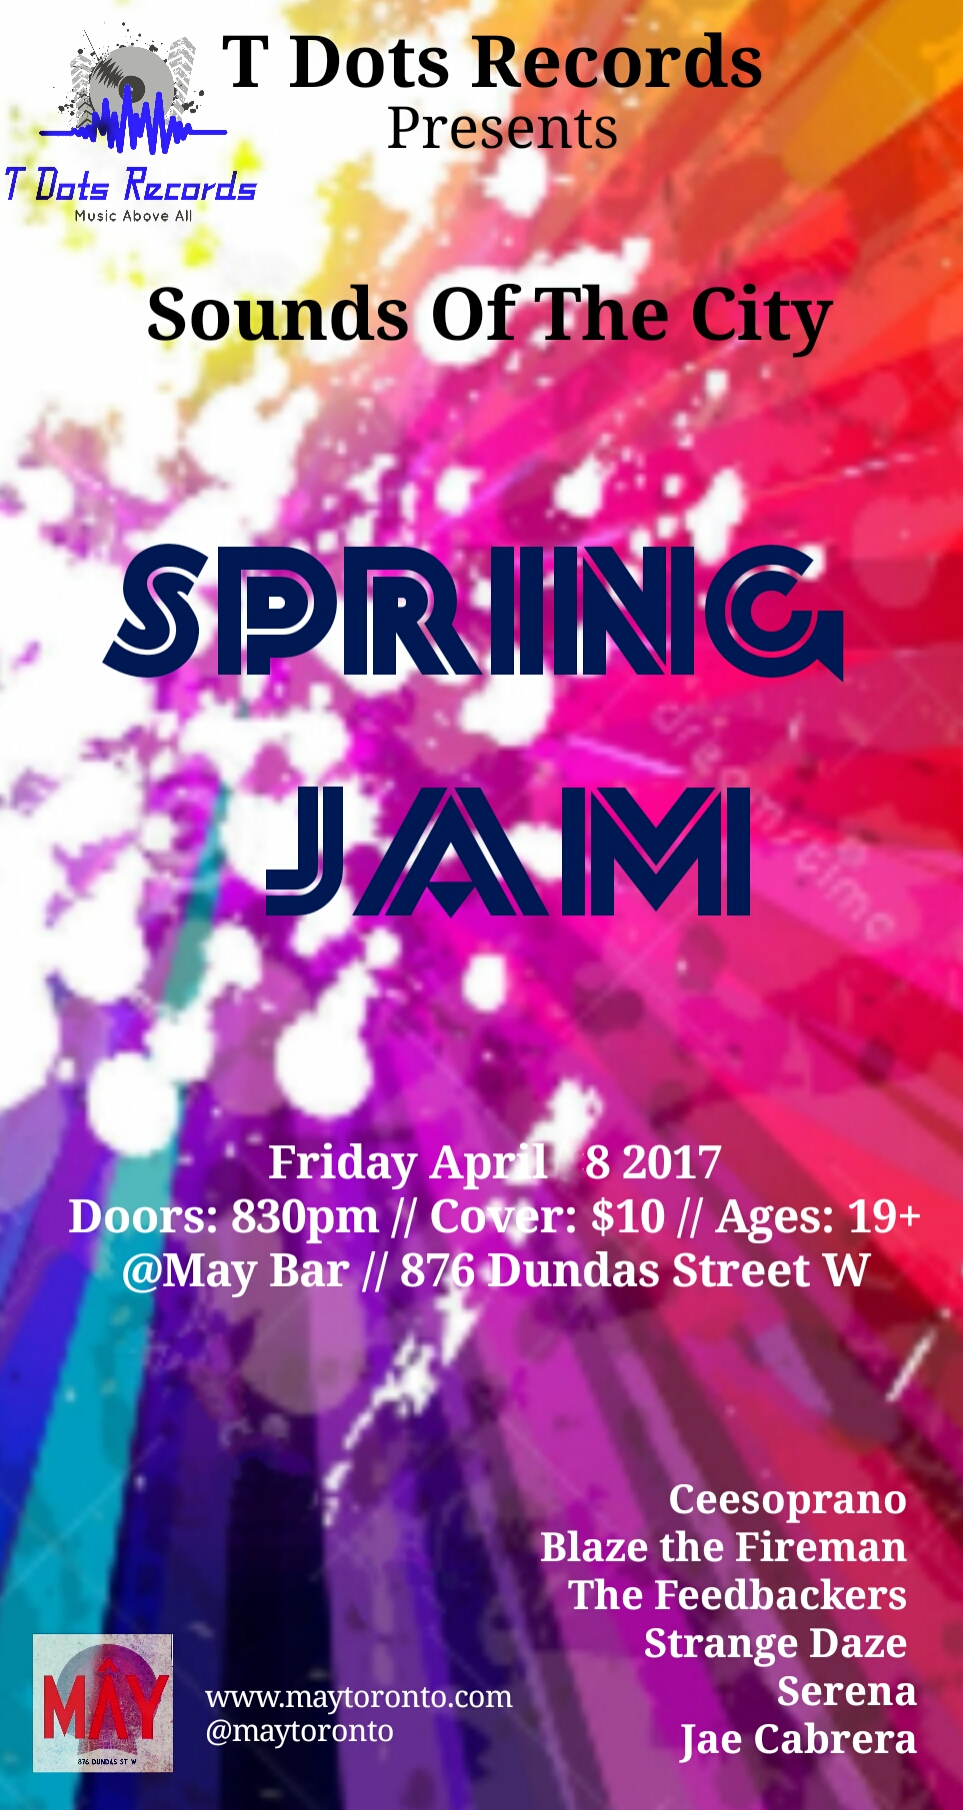 SpringJamm_SerenaOfficial_April 8th_MayBar